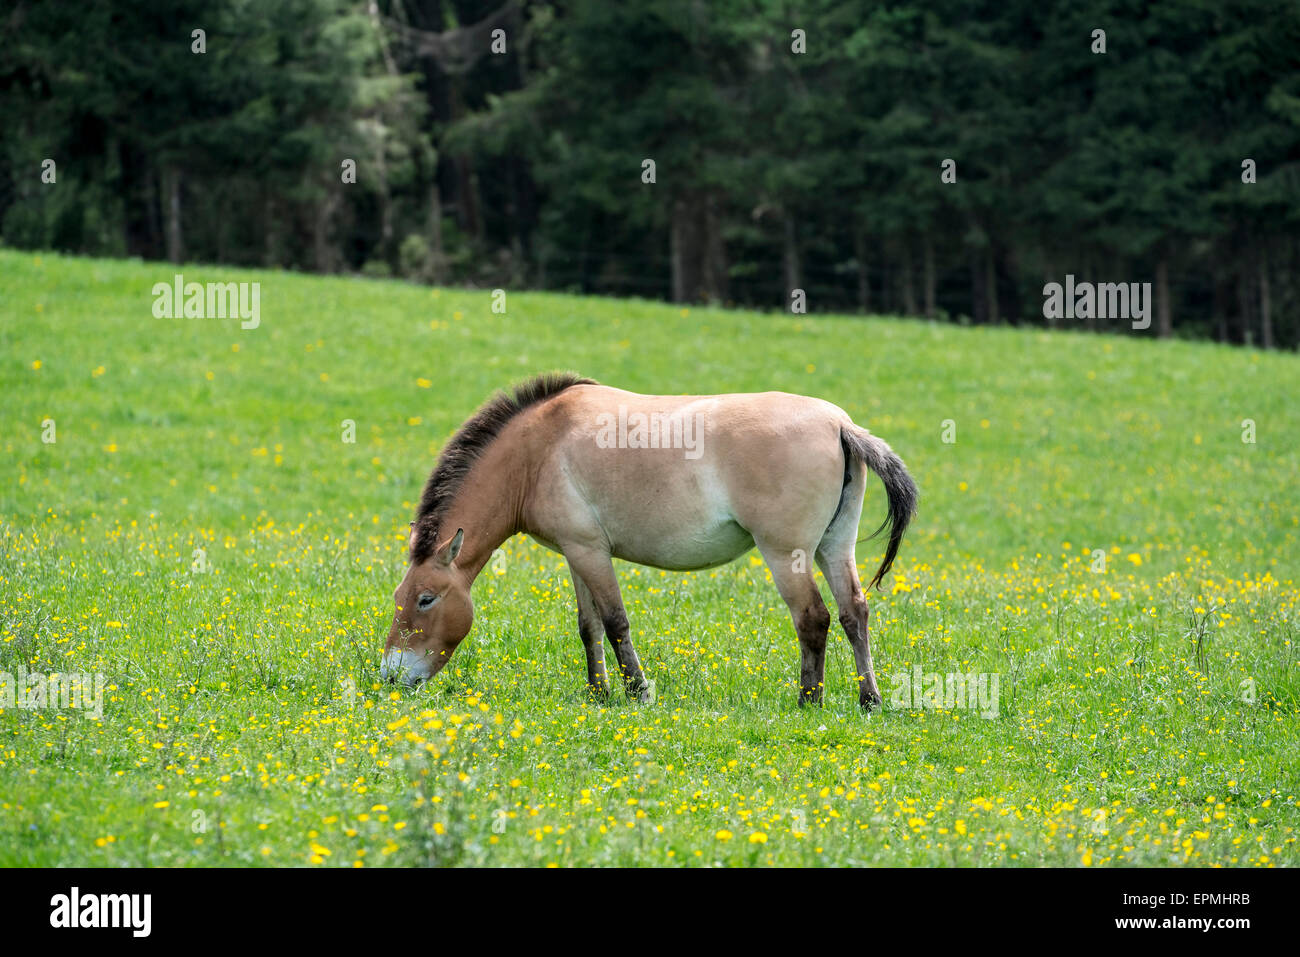 Przewalski horse (Equus ferus przewalskii) native to the steppes of Mongolia, central Asia grazing in grassland Stock Photo